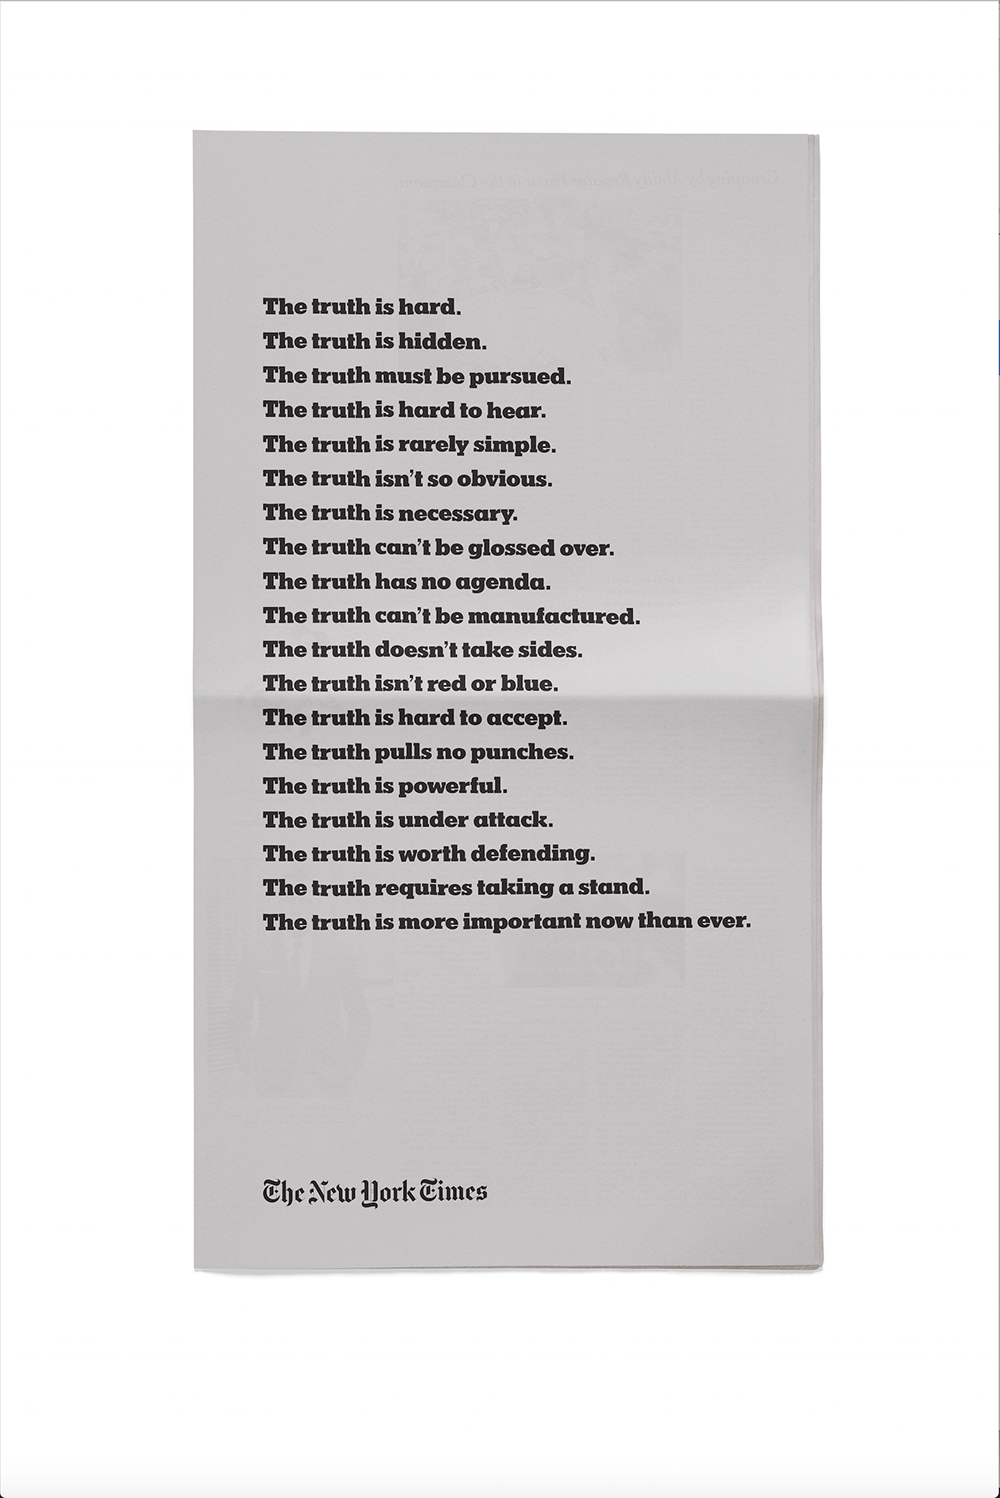 Contagency_truth_nyt_new_york_times_droga5_campaign_print